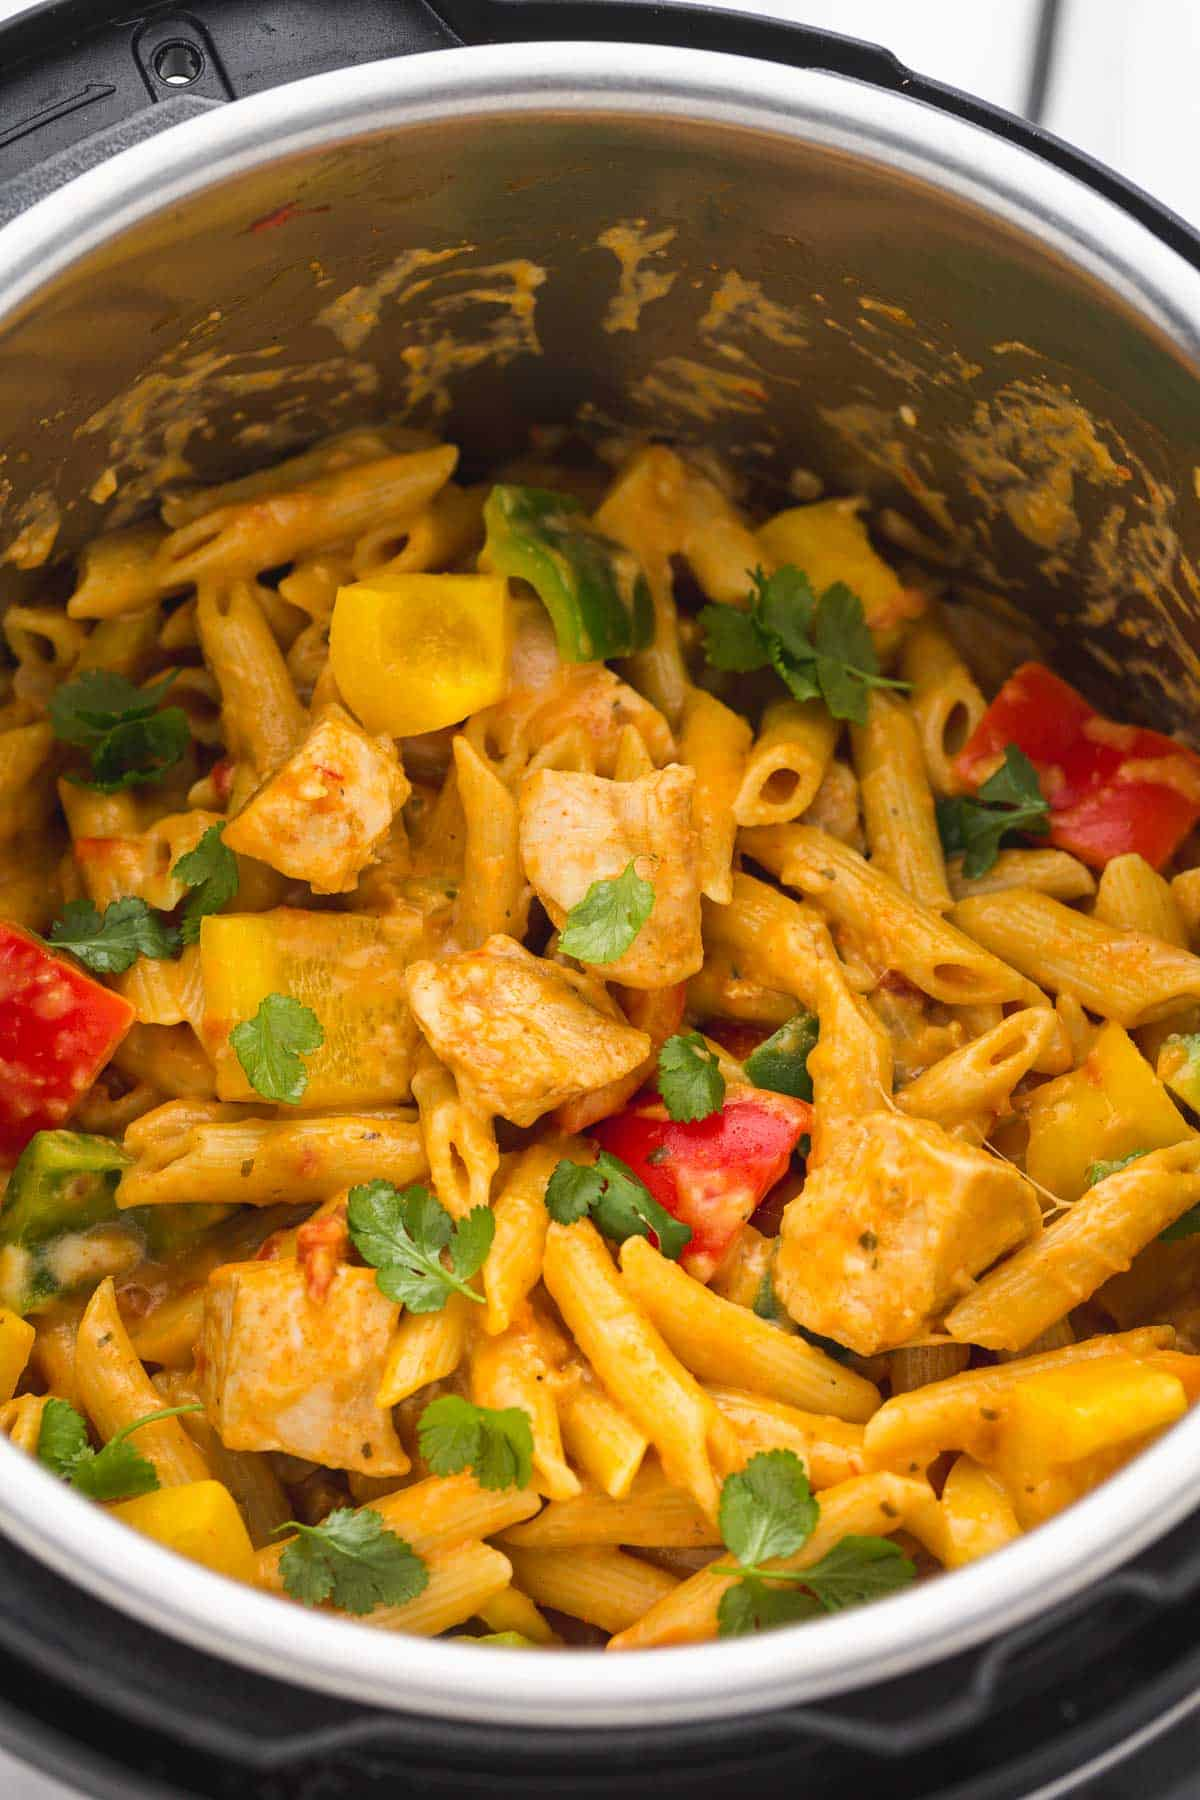 Chicken Fajita Pasta in the Instant Pot, garnished with cilantro leaves